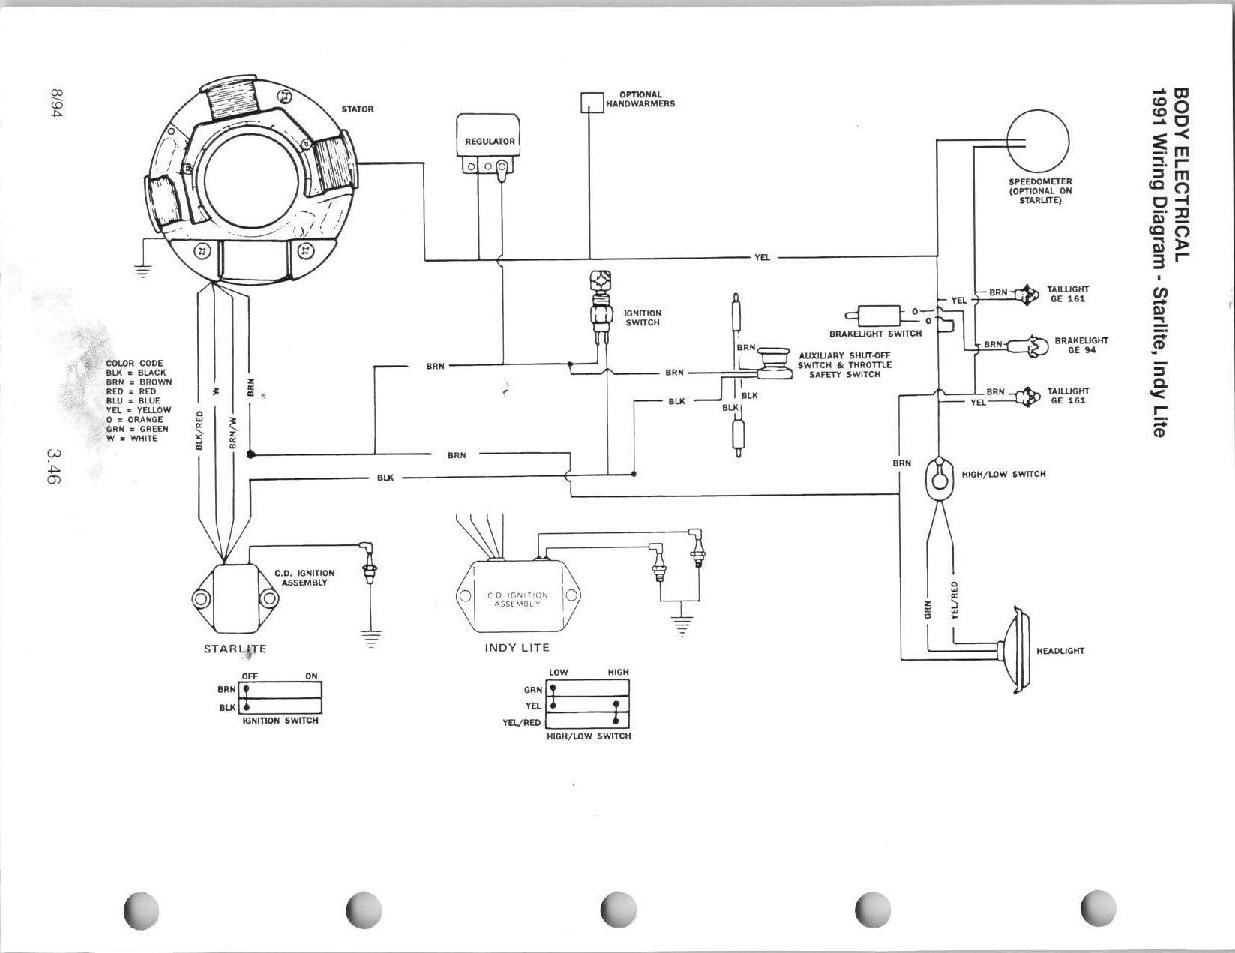 hight resolution of 2013 polaris 200 phoenix wiring diagram wiring diagram blogs polaris phoenix engine diagram mb 900 wiring